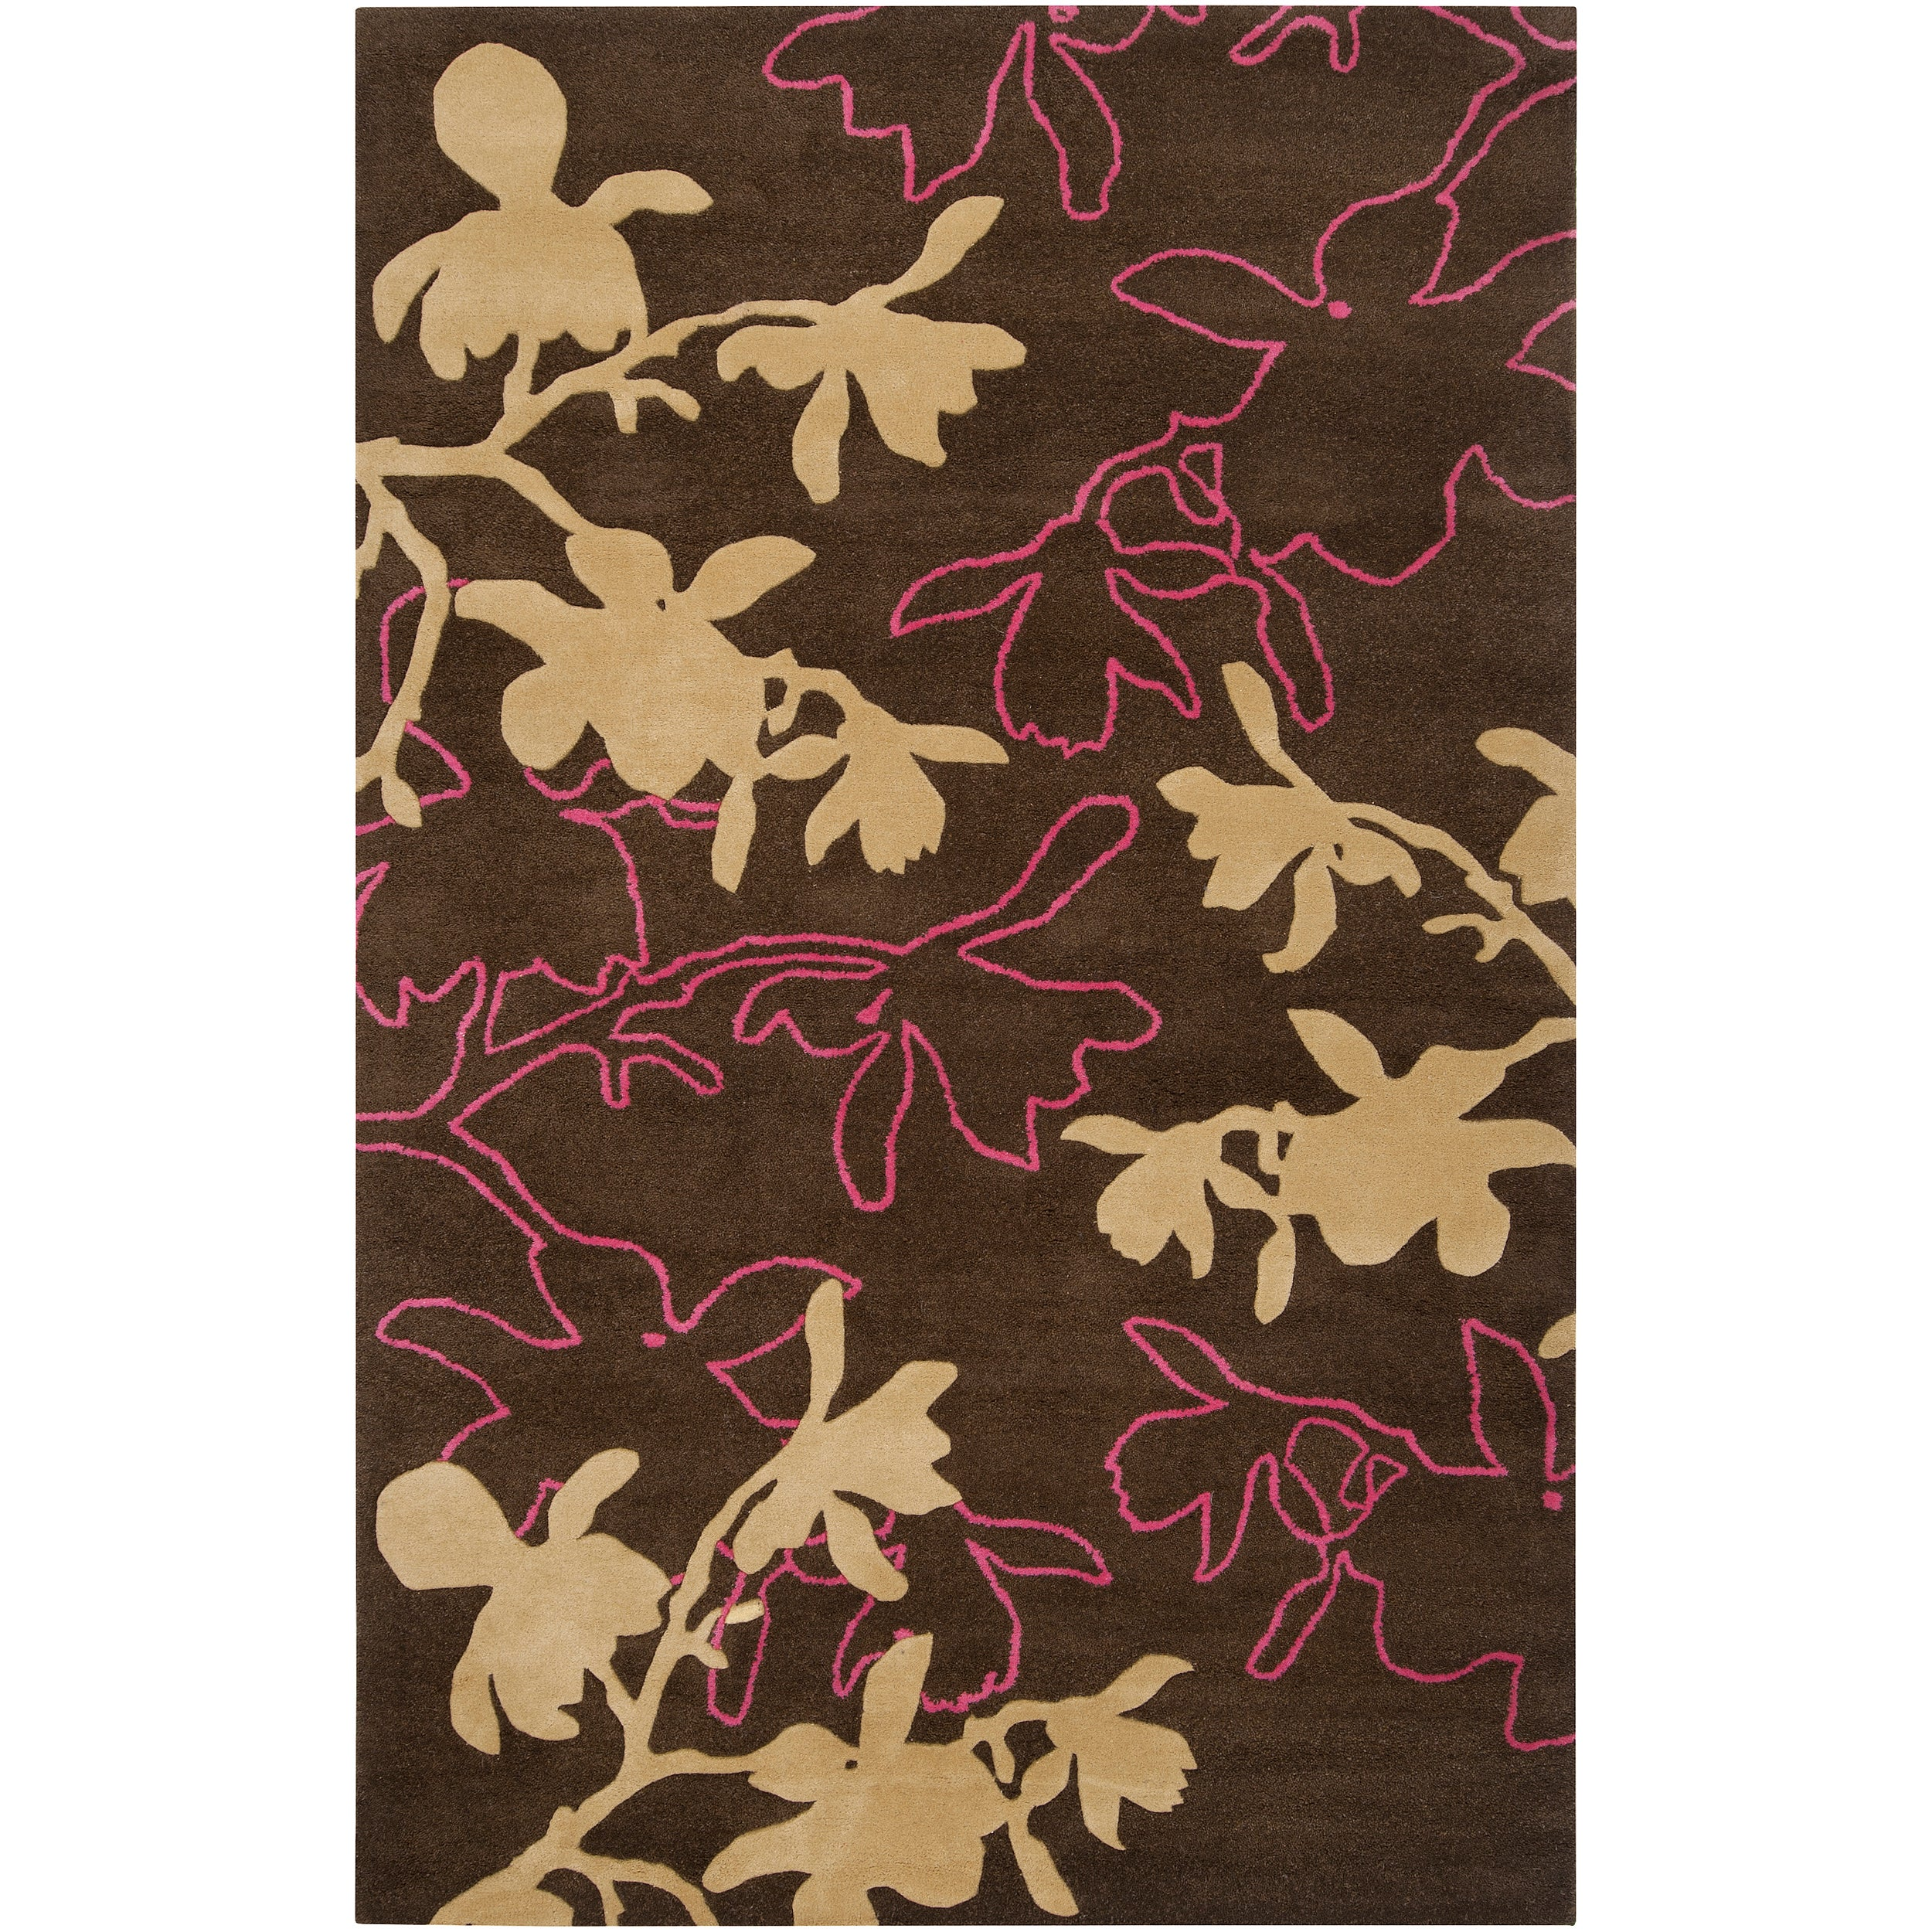 Jef Designs Hand-tufted Dark Brown/Pink Contemporary Gaffney Wool Floral Rug (5' x 8')